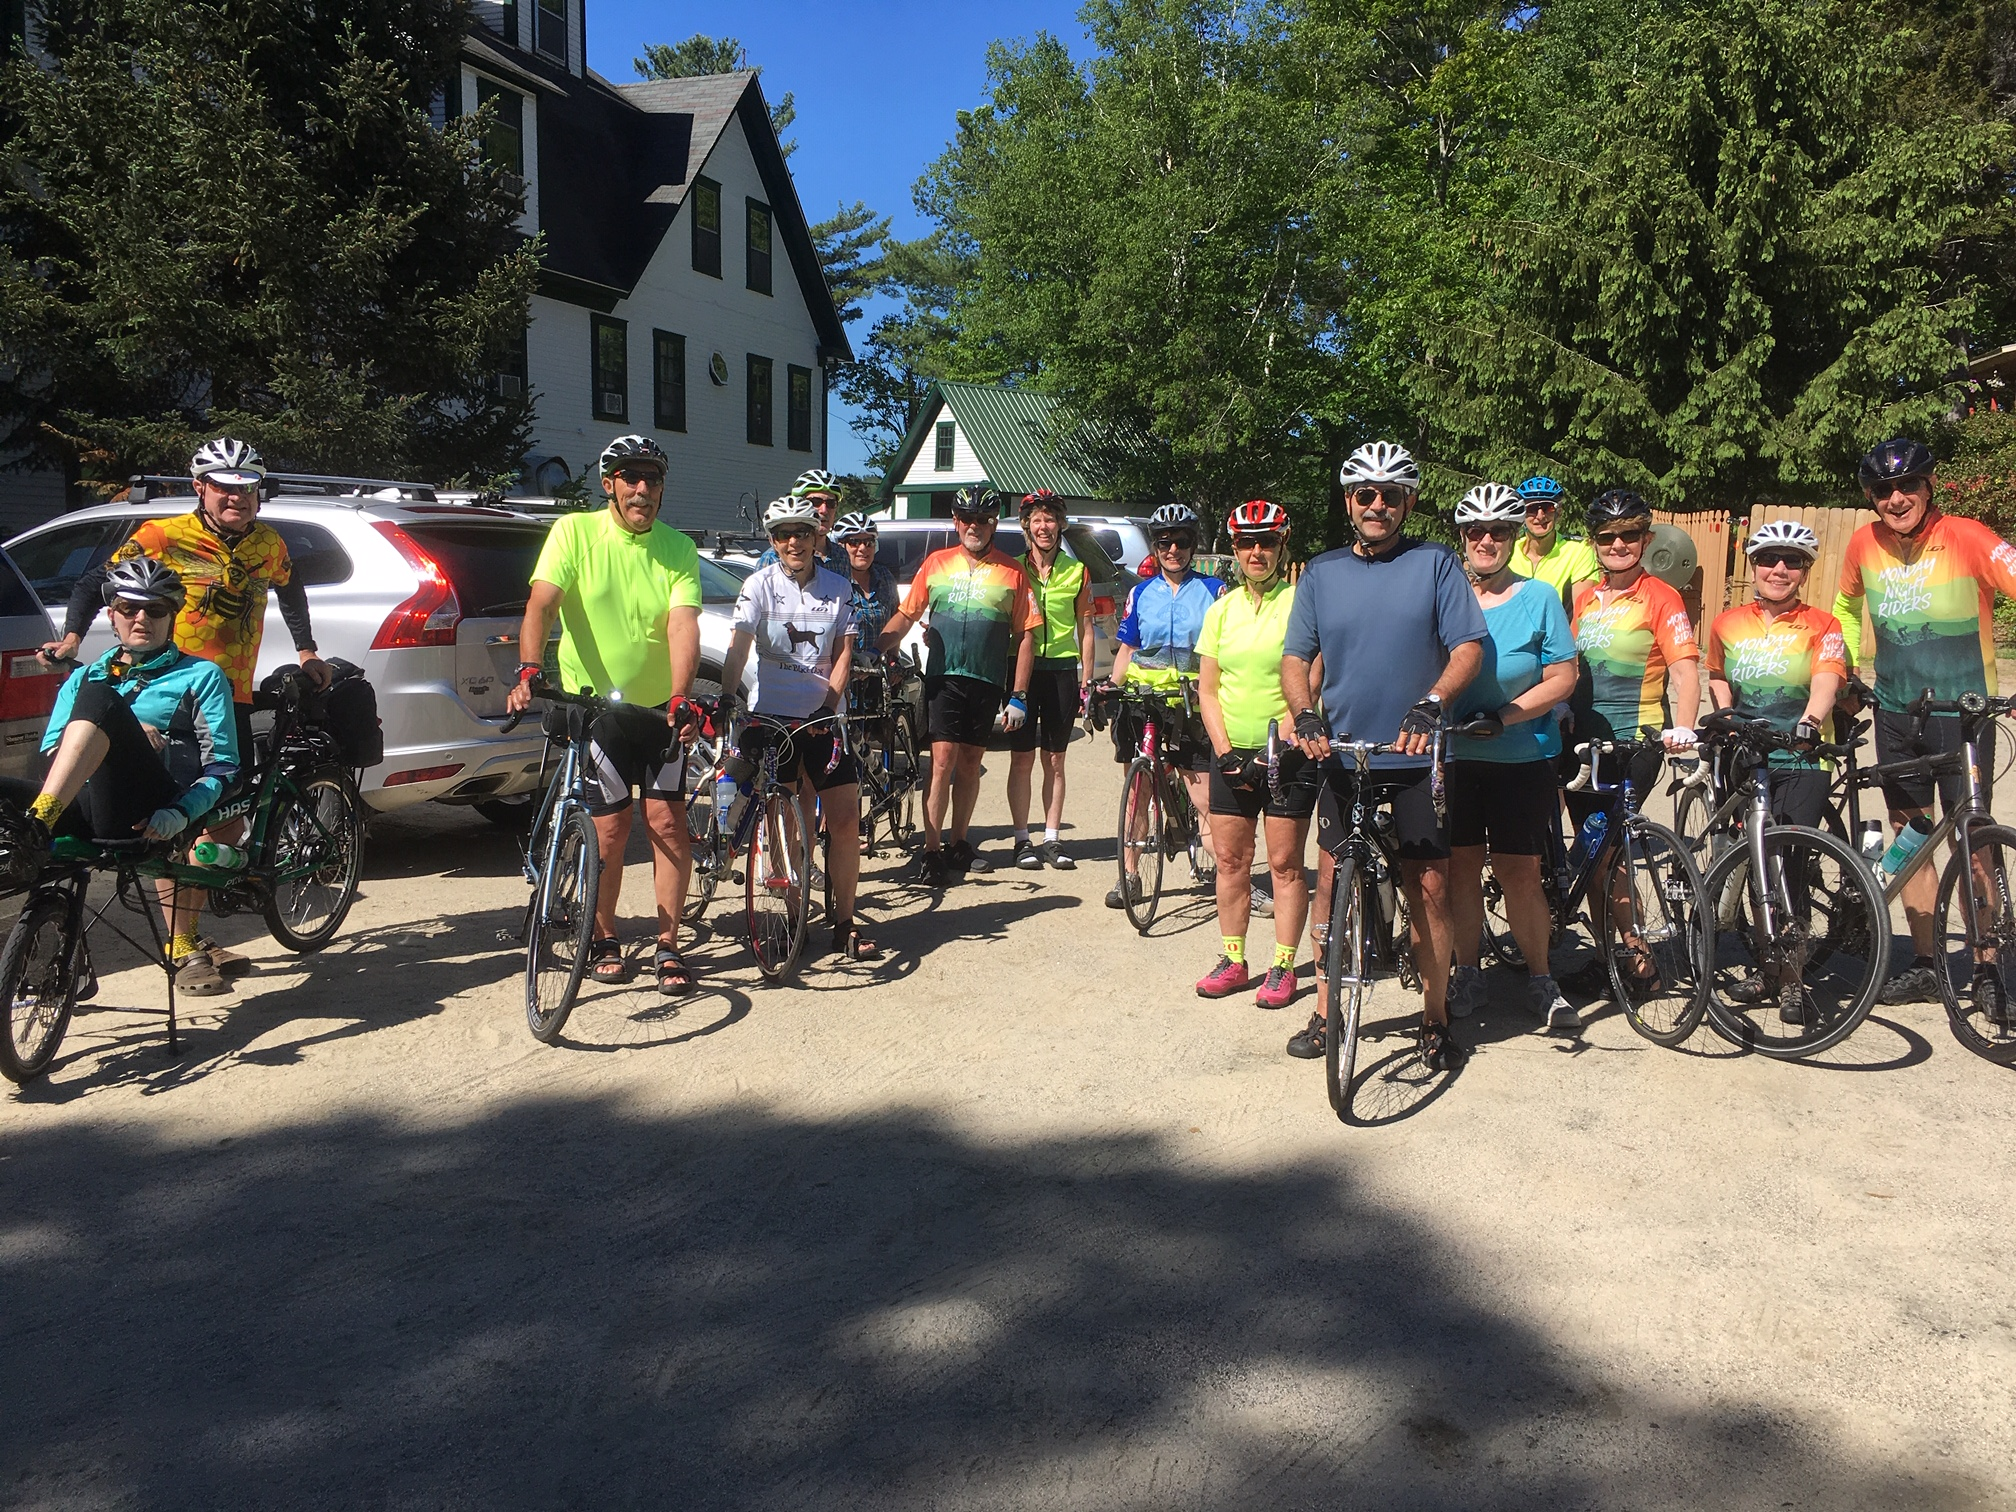 Group of Bicyclists in front of the Follansbee Inn